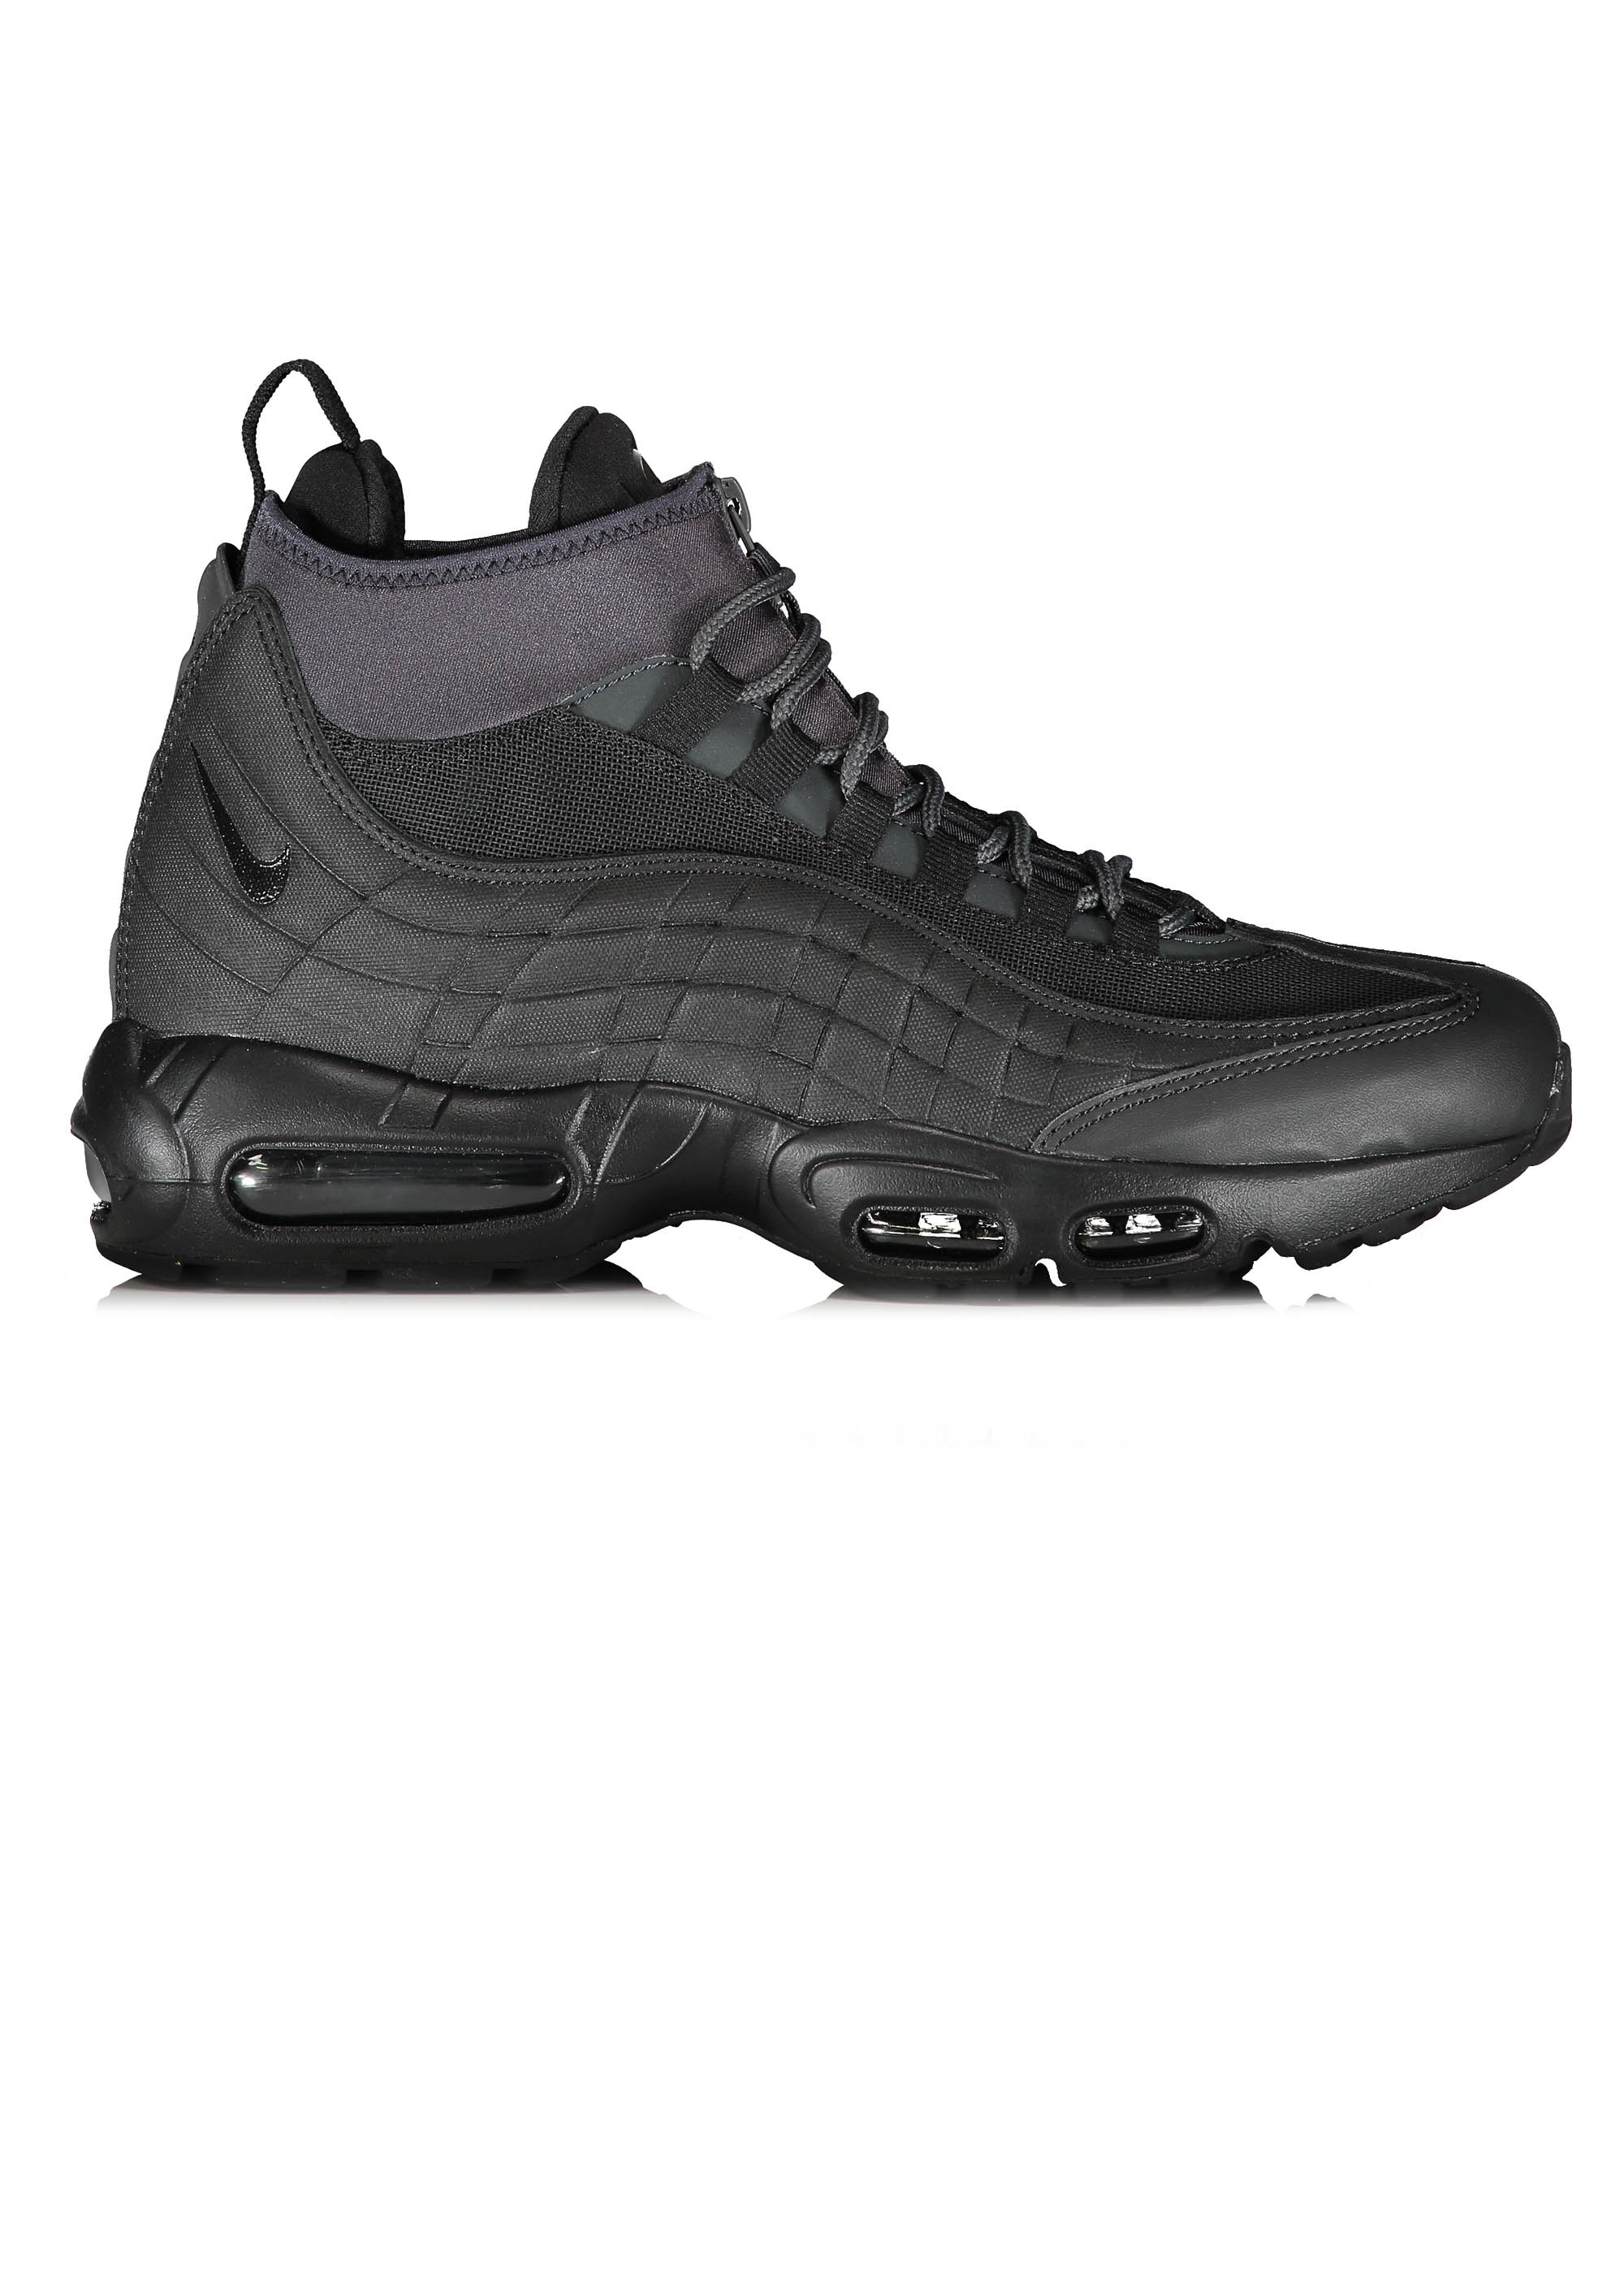 3fd50cb9d8d99 Nike Footwear Air Max 95 Sneakerboot - Black - Triads Mens from ...